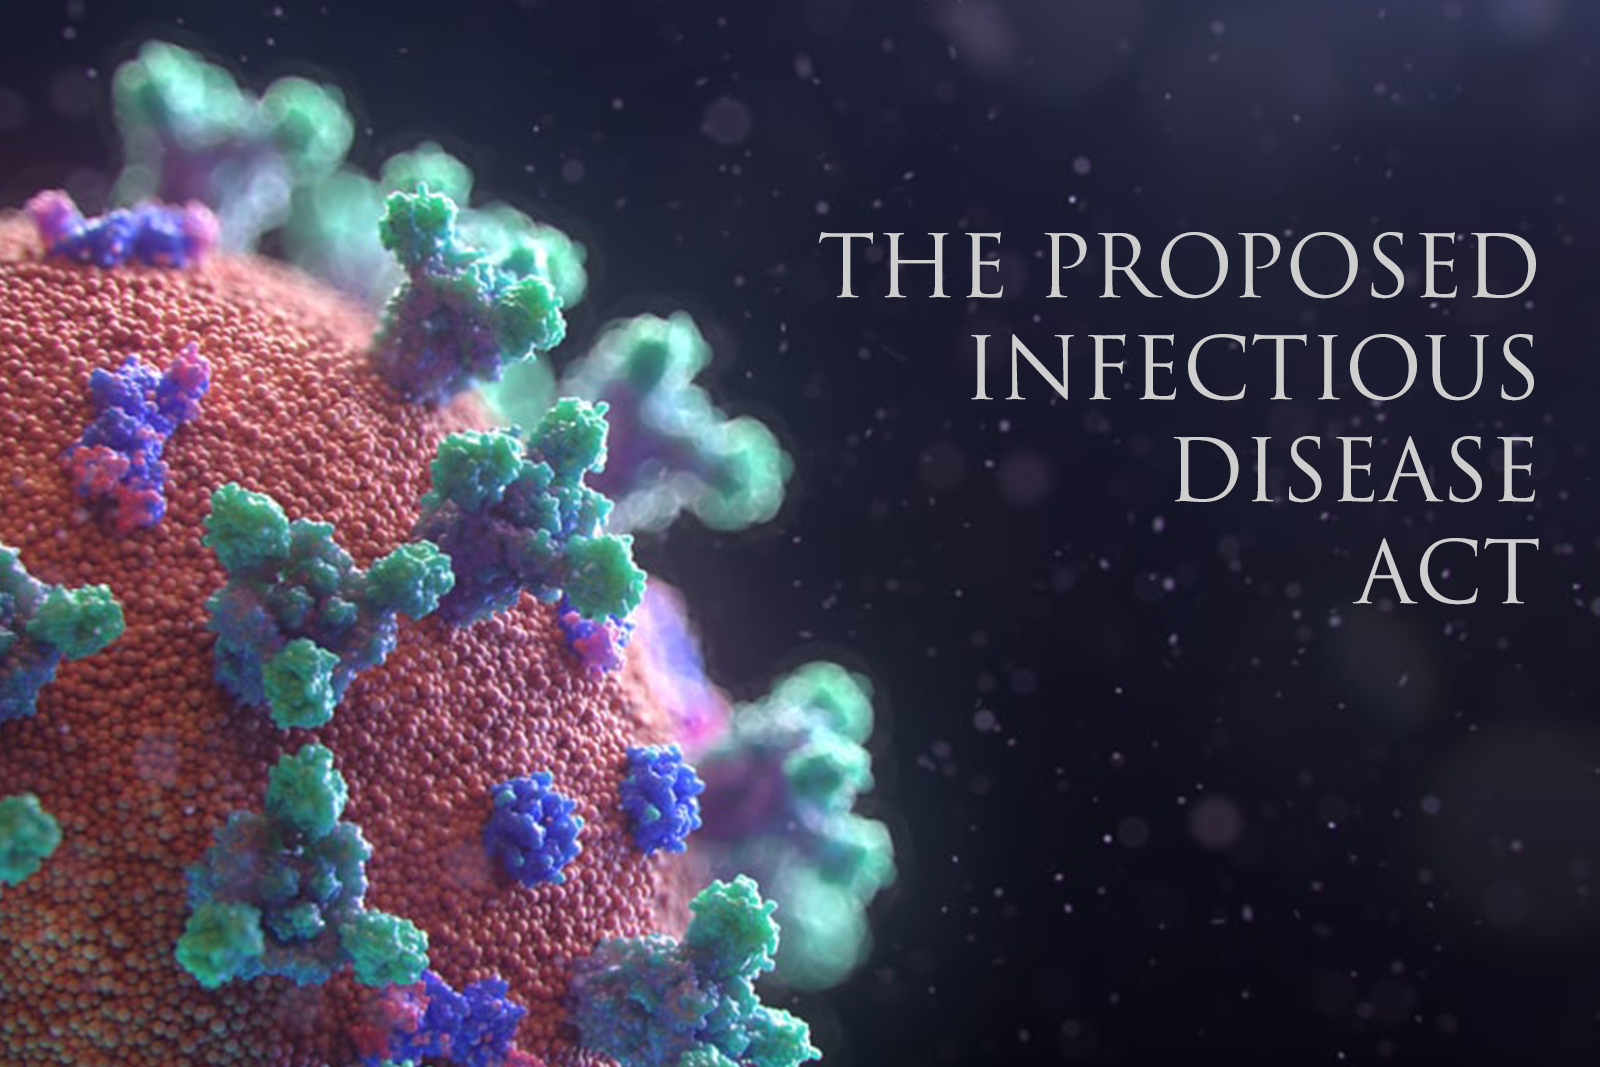 THE PROPOSED INFECTIOUS DISEASE ACT